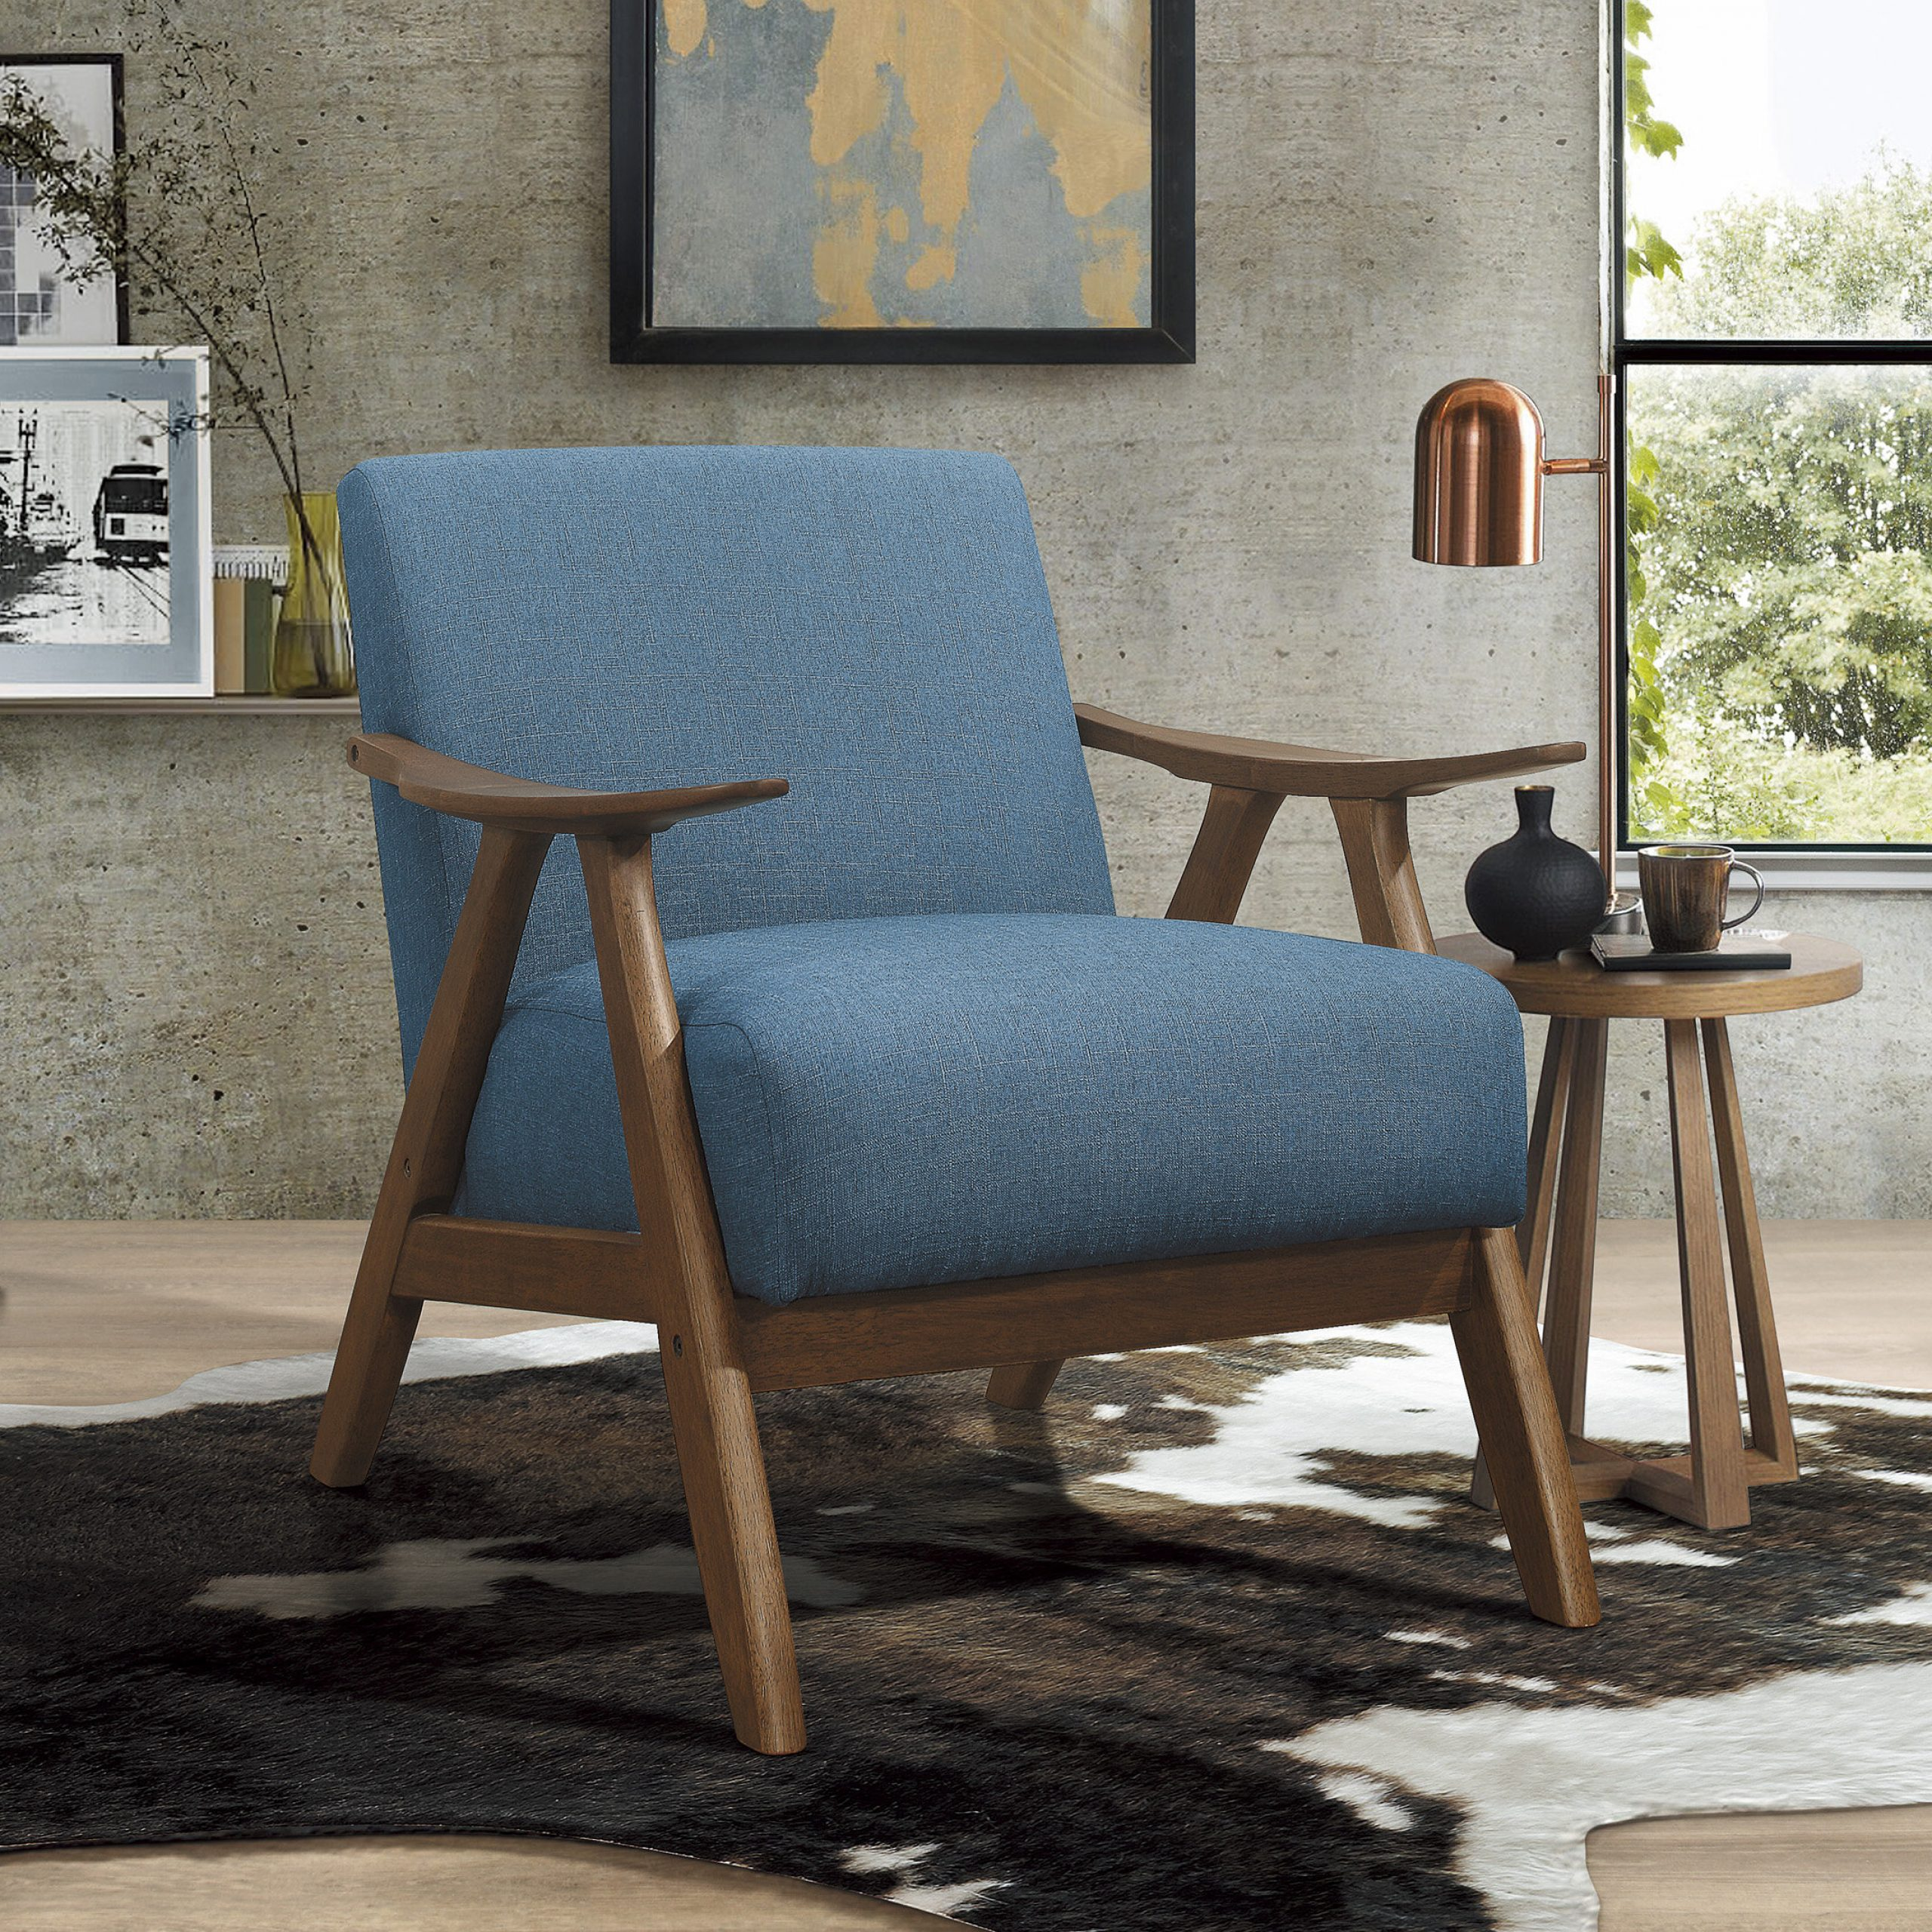 Most Recent Arm Modern & Contemporary Accent Chairs You'll Love In 2021 With Dallin Arm Chairs (View 4 of 20)